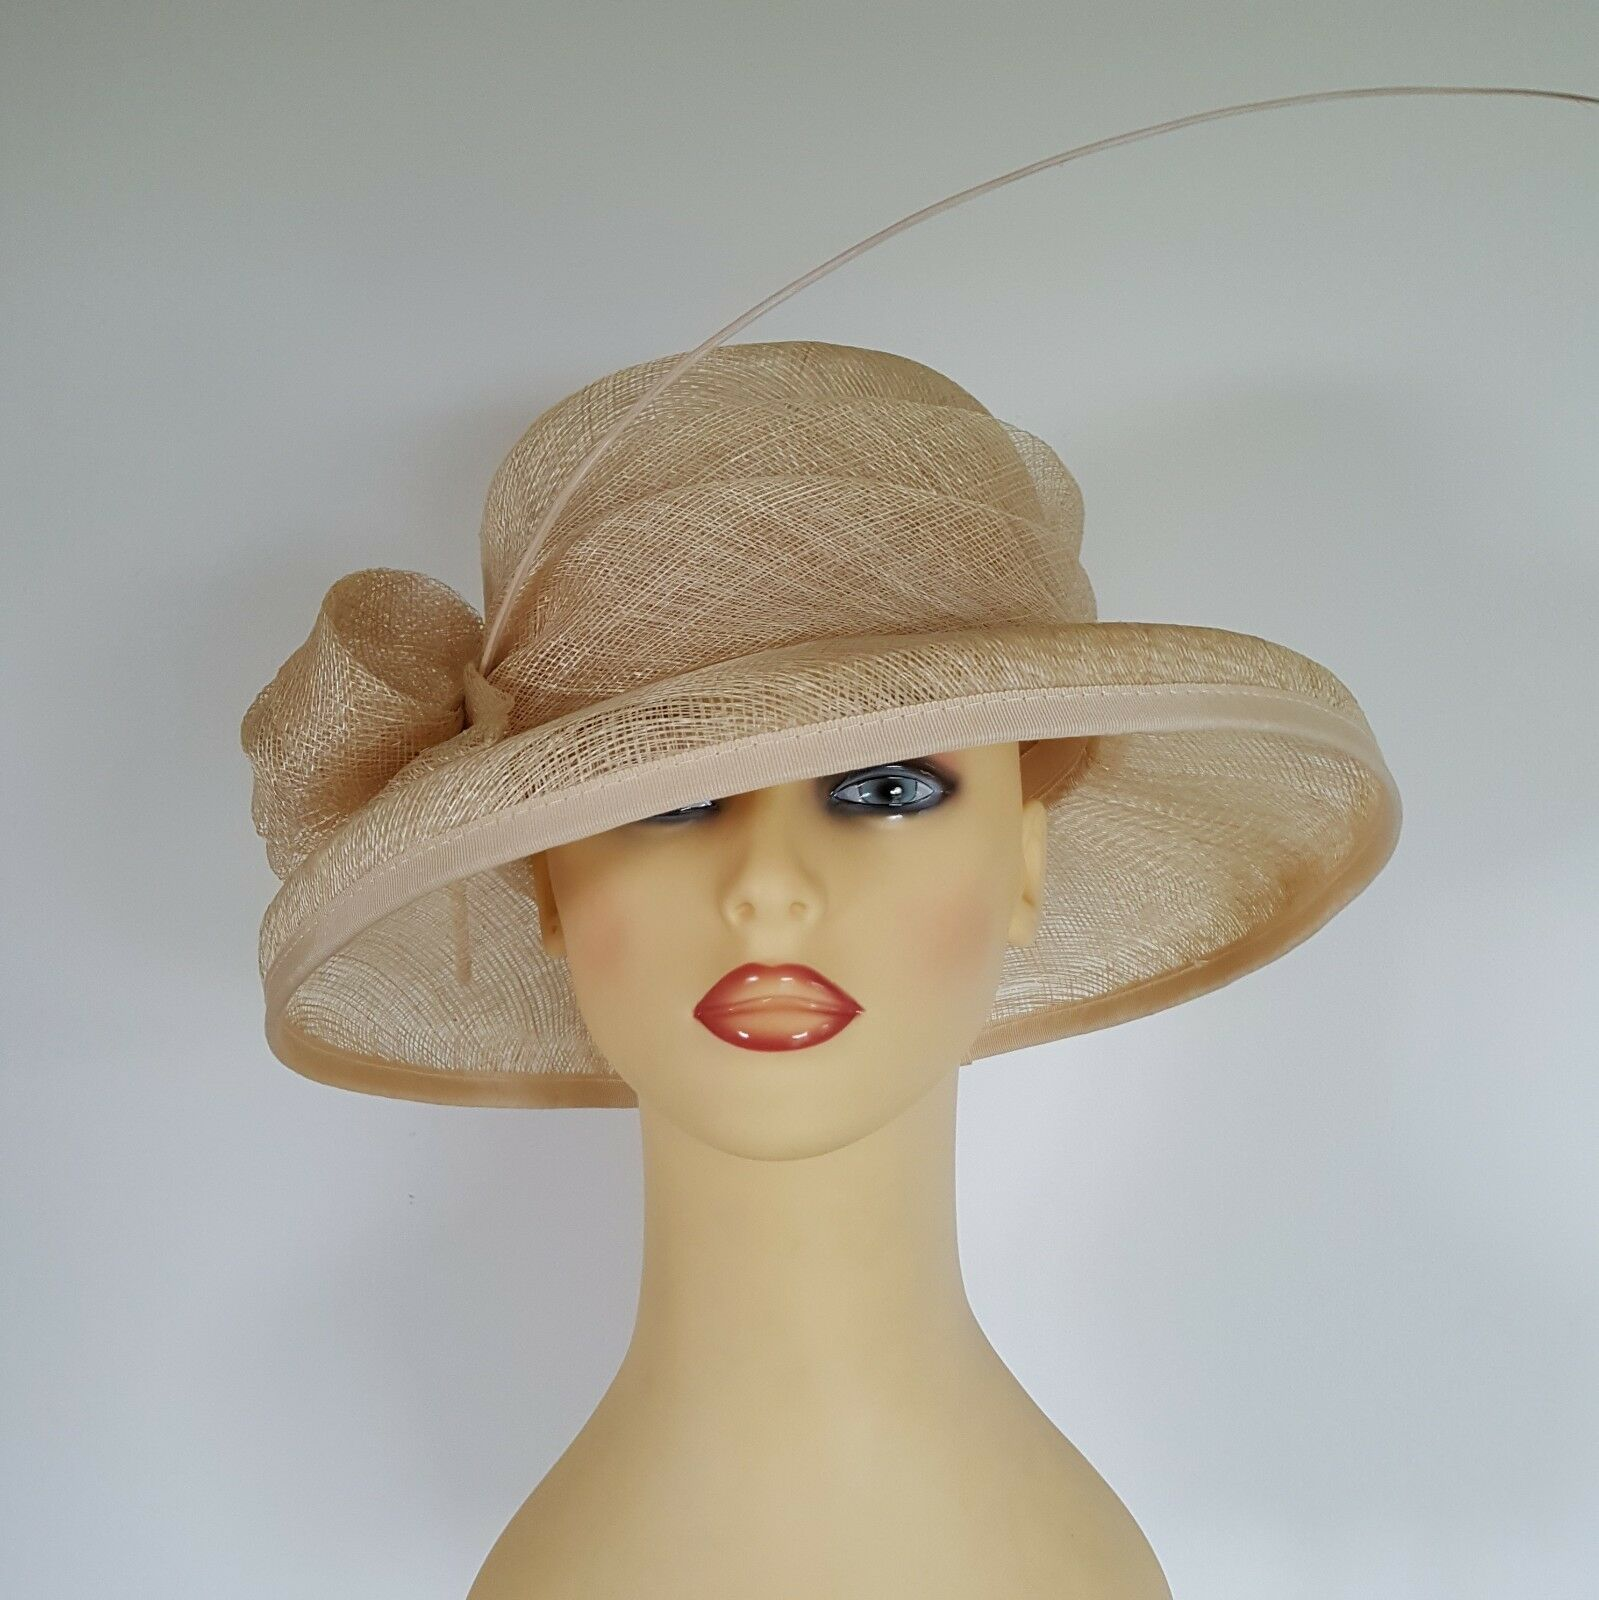 Ladies Formal Wedding Hat Races Mother Bride Golden Cream By Balfour 1 Of 7Only Available